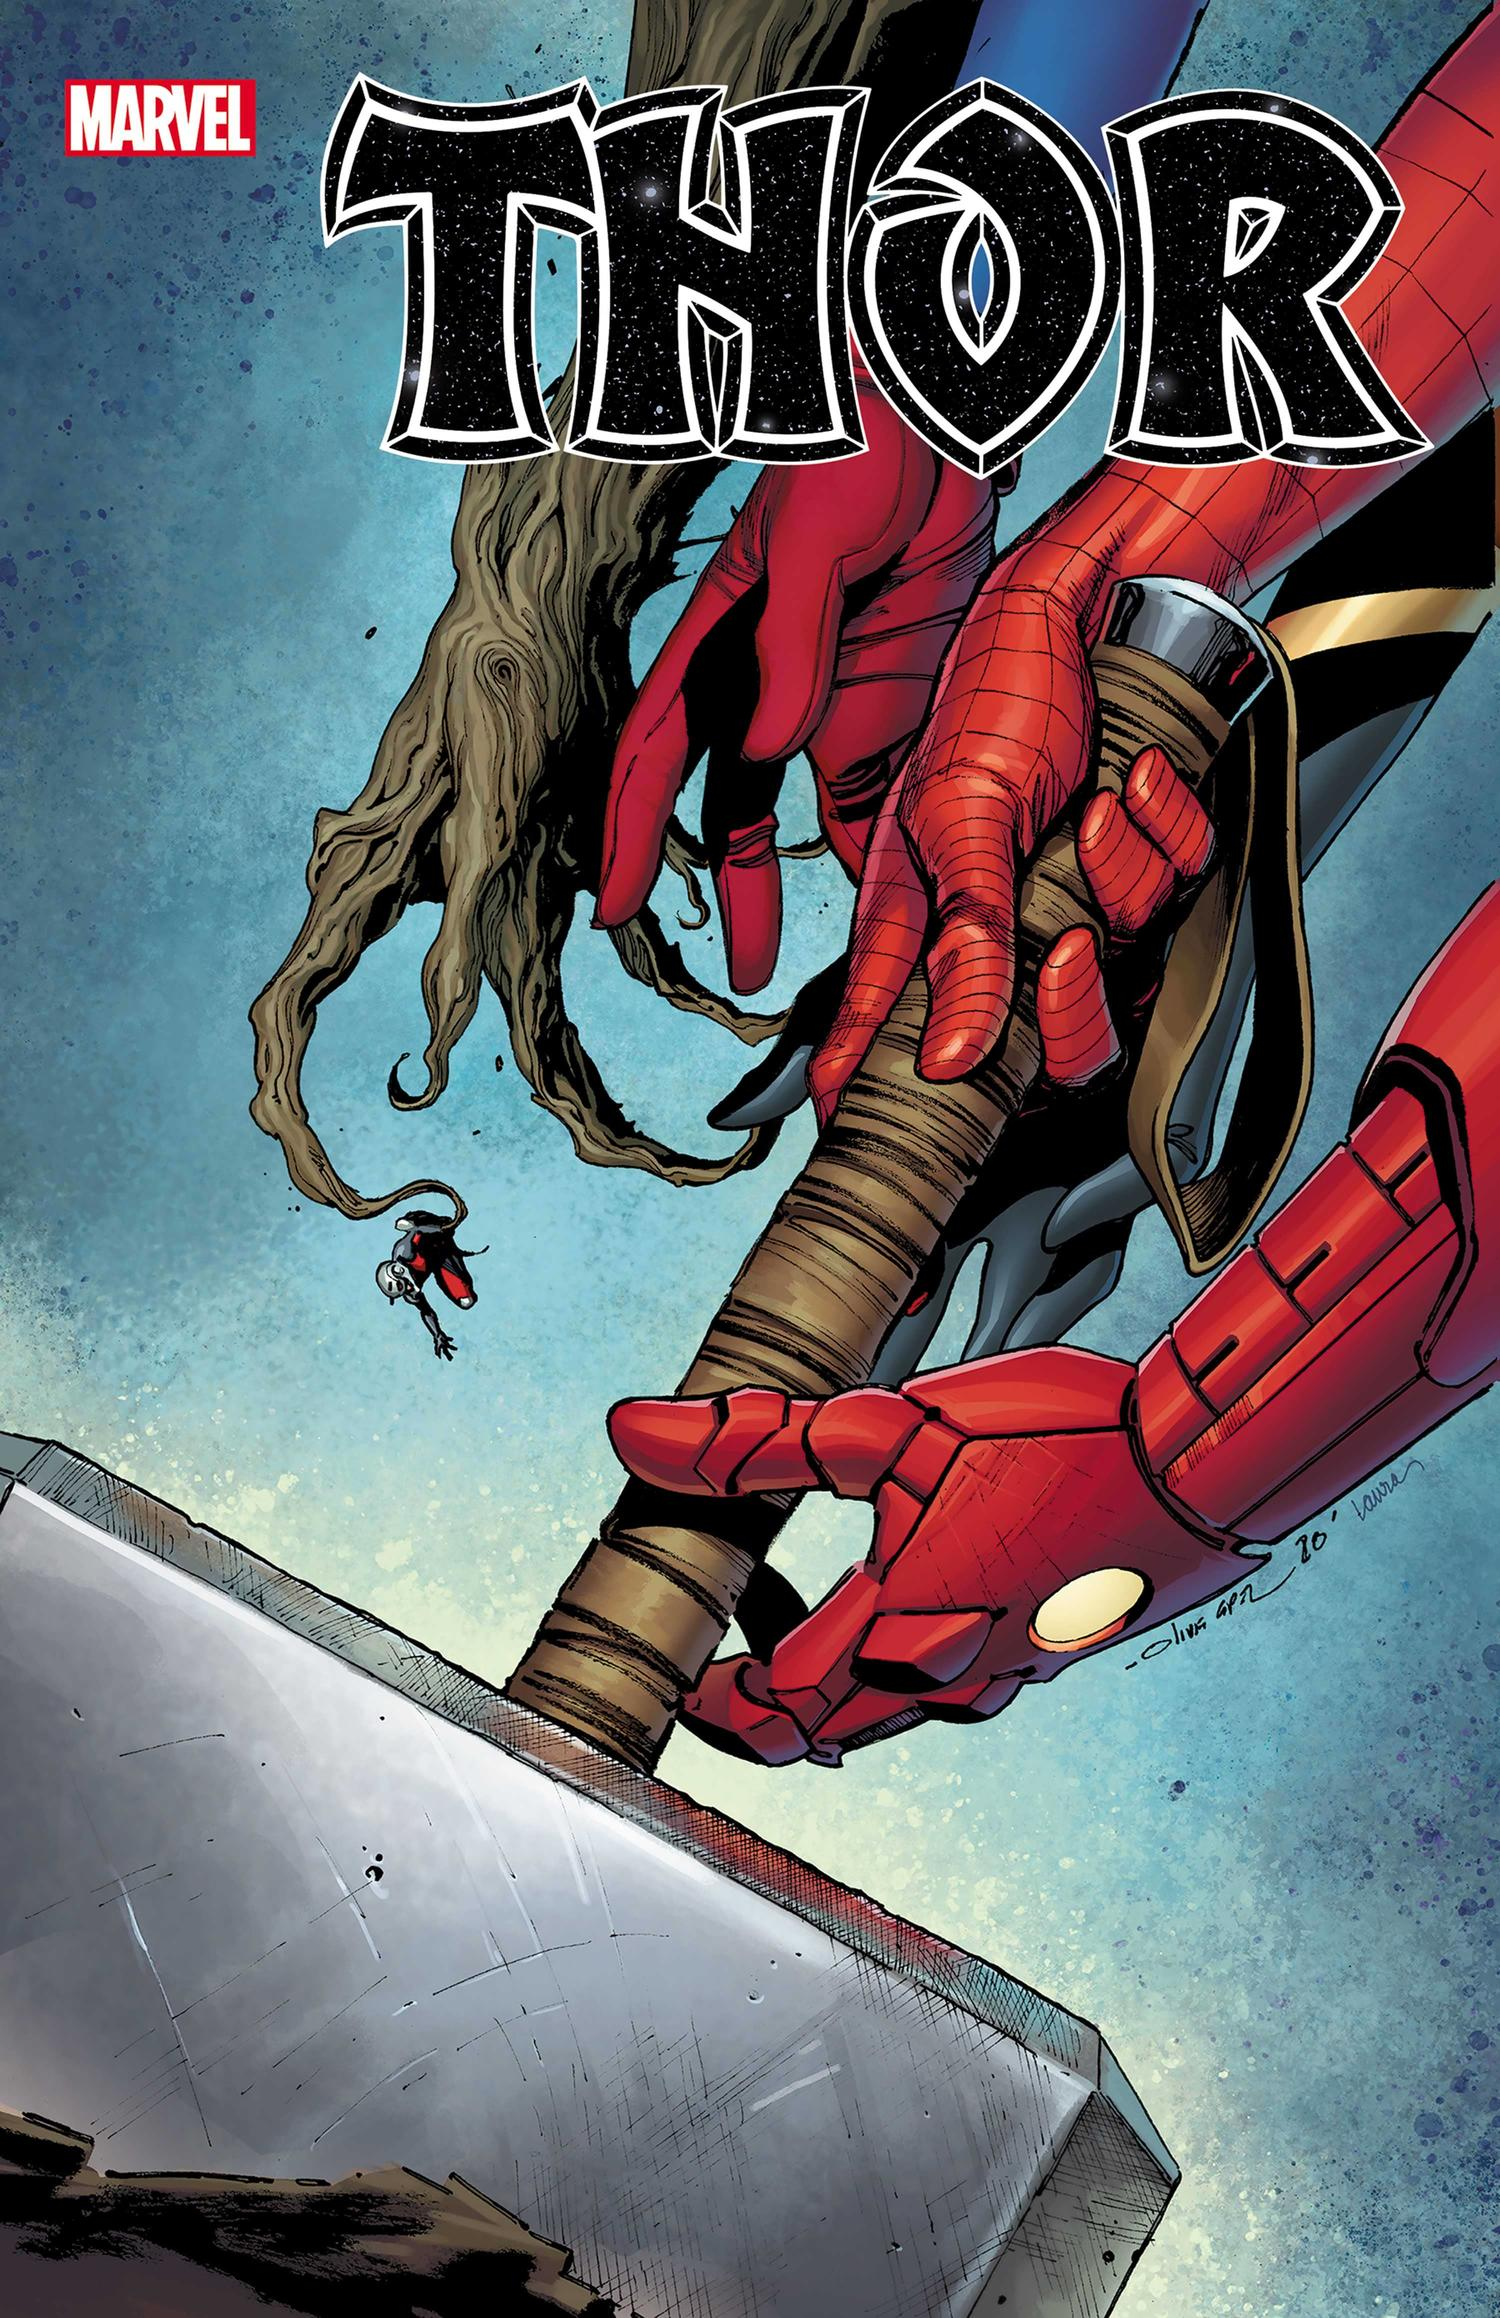 THOR #7 cover by Olivier Coipel